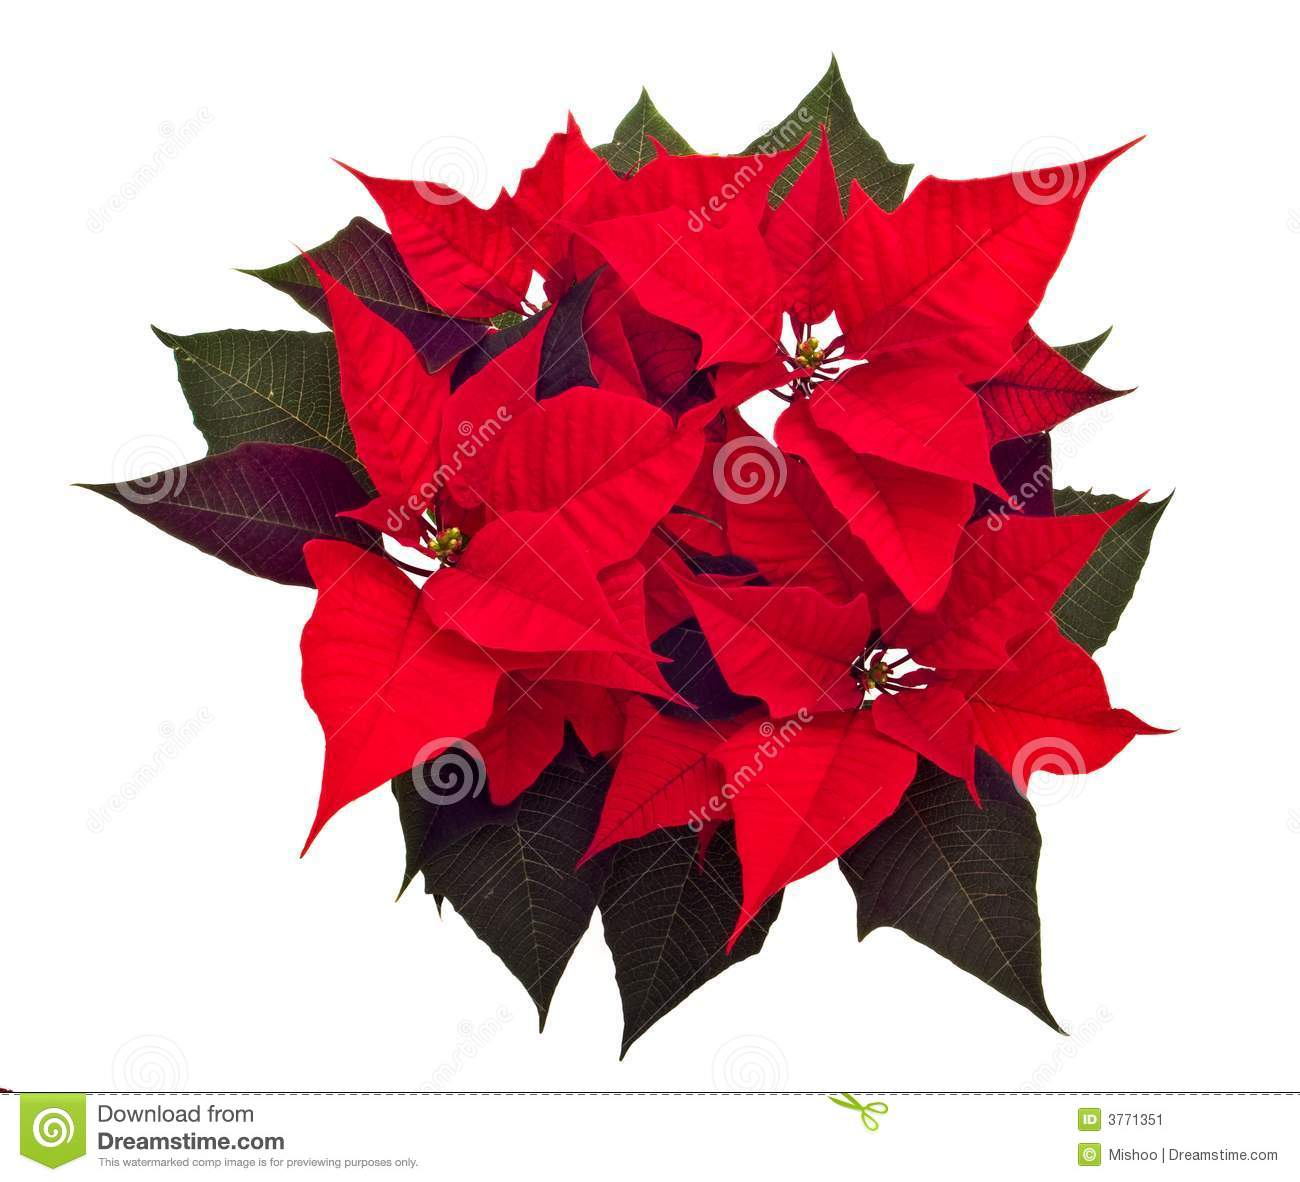 poinsettias christmas flower stock photos, images,  pictures, Beautiful flower